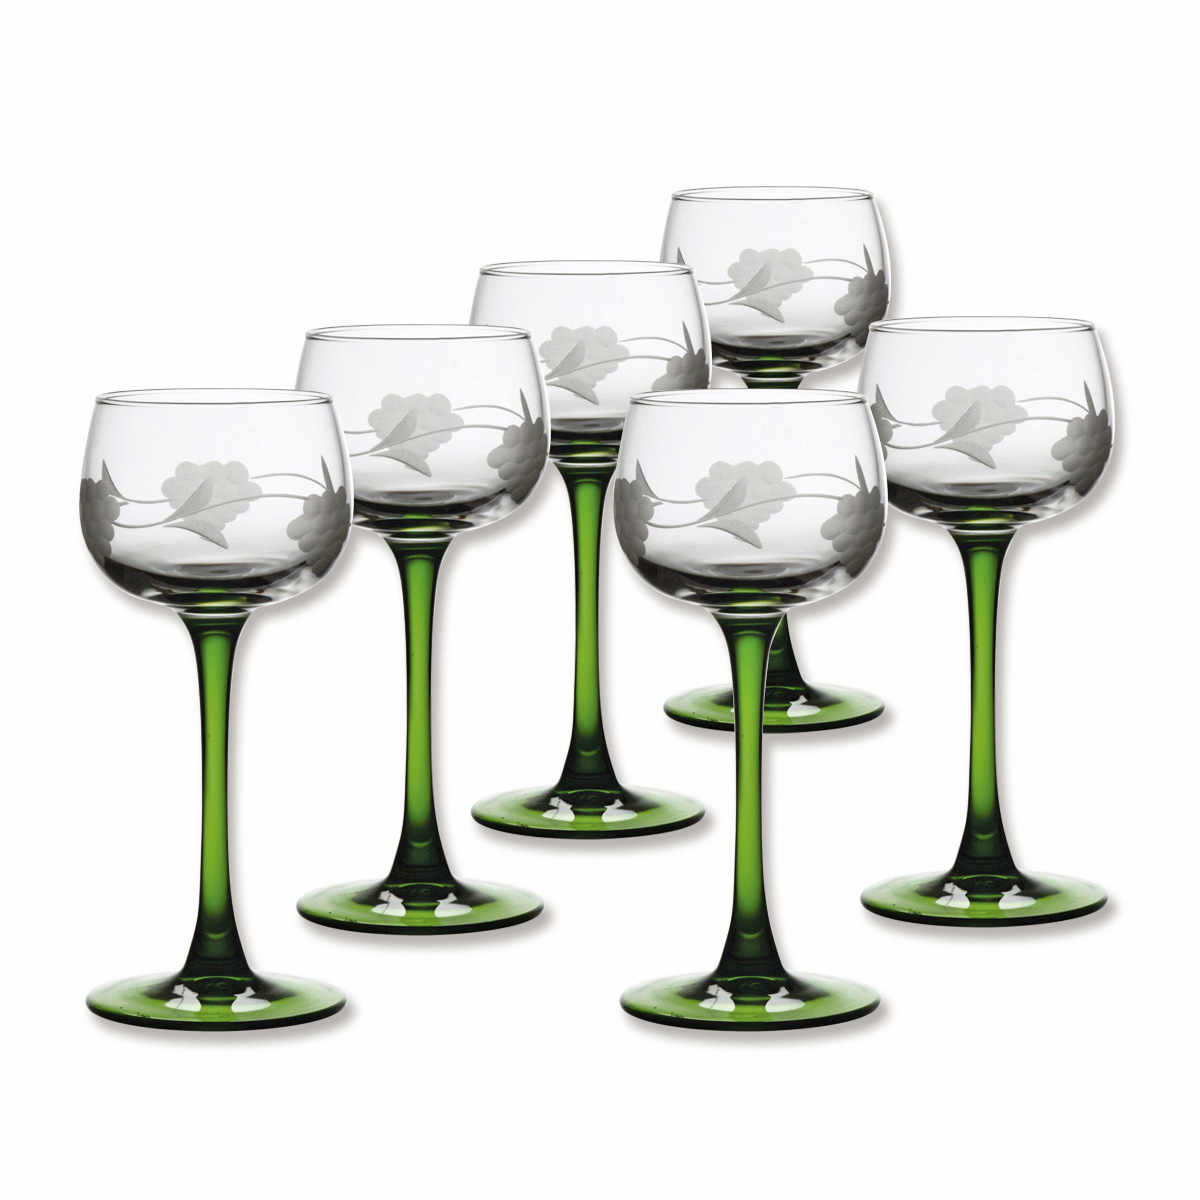 verre vin d 39 alsace verres grav s pied vert bruno evrard. Black Bedroom Furniture Sets. Home Design Ideas